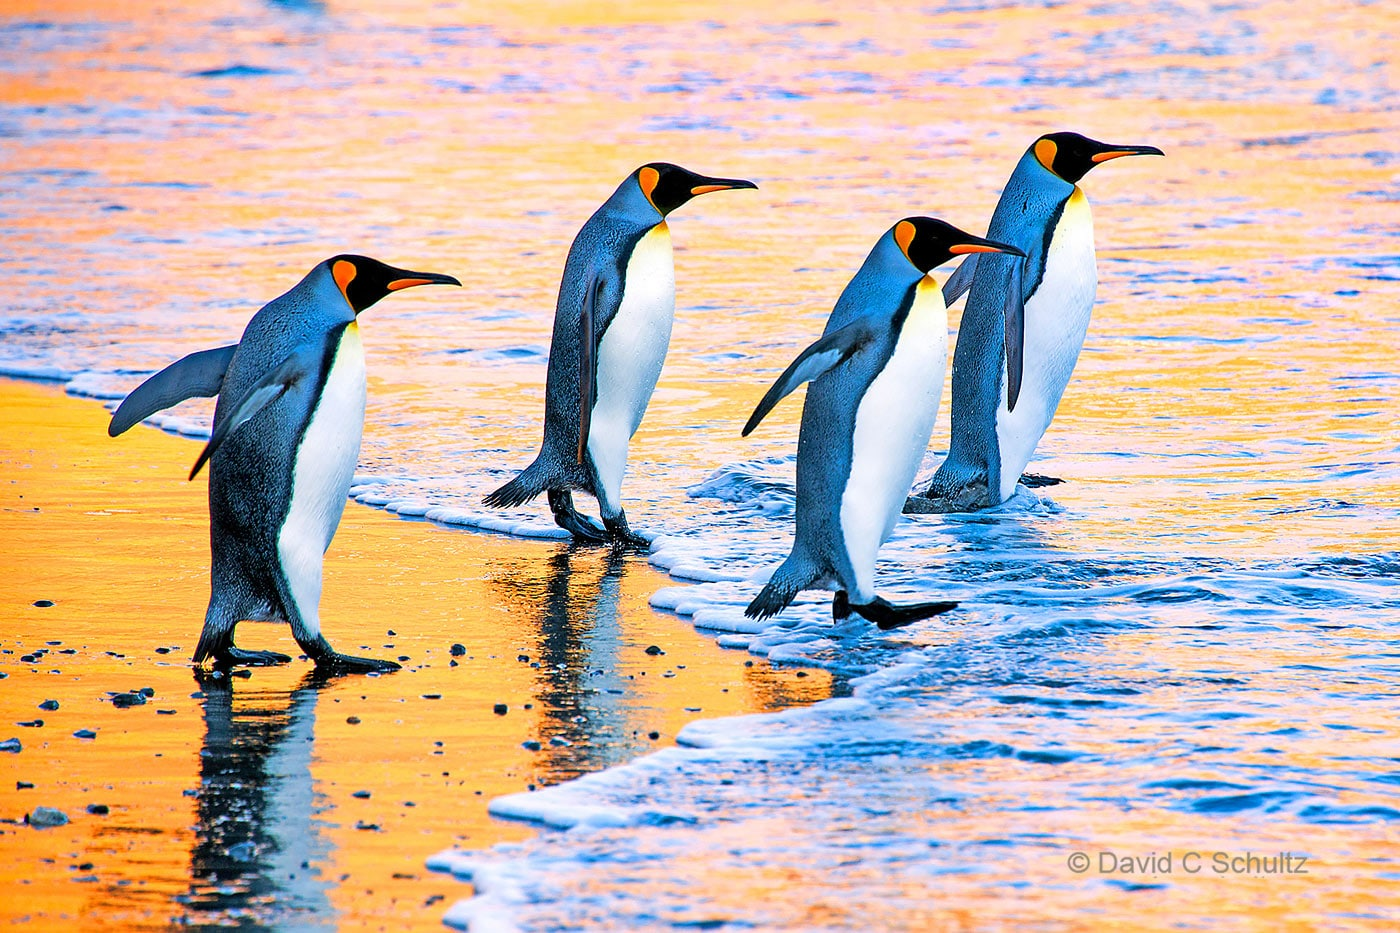 King penguins on South Georgia Island - Image #163-1553